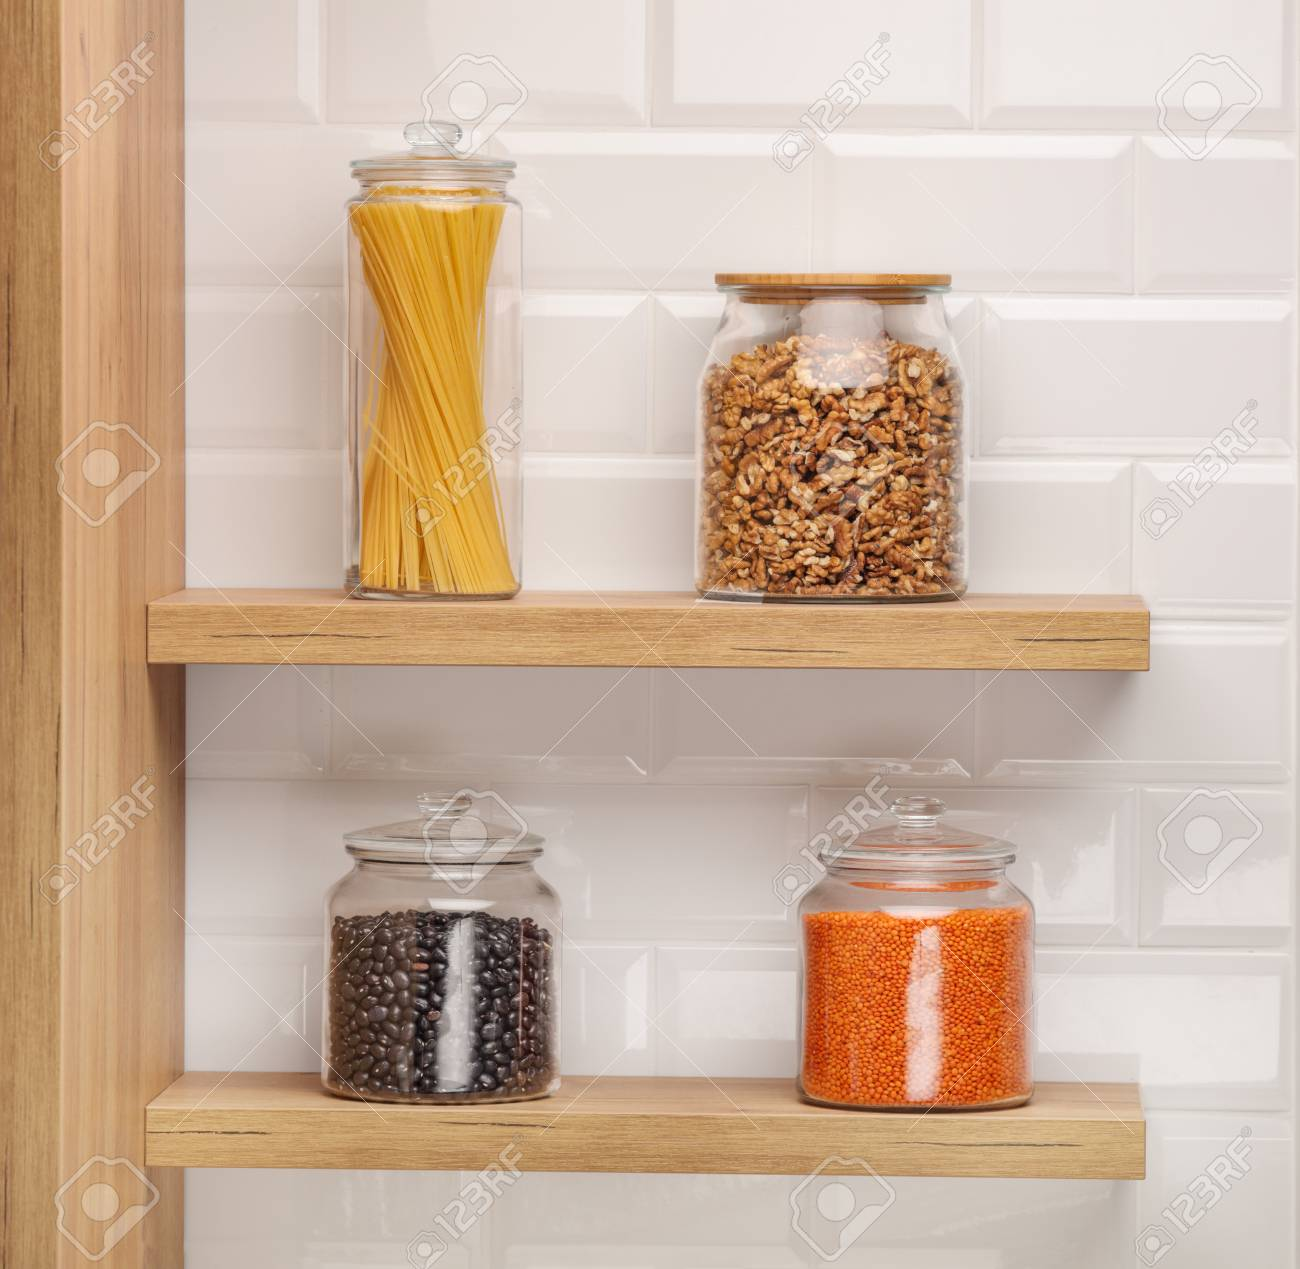 Glass Jars On Wooden Kitchen Shelves Filled With Spaghetti Walnuts Stock Photo Picture And Royalty Free Image Image 117124716